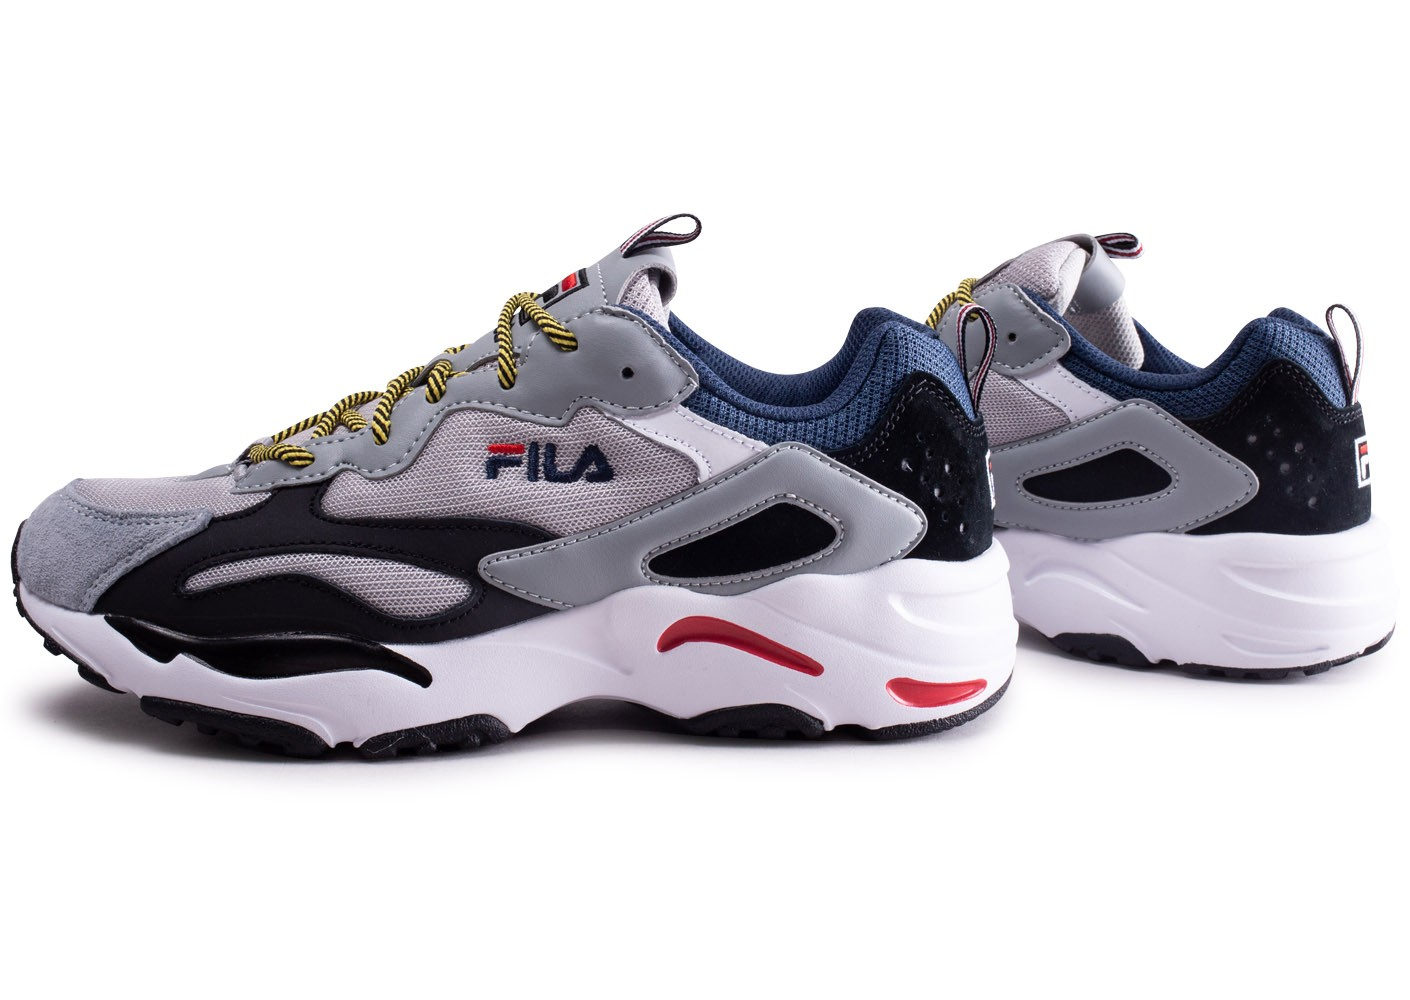 Tracer Chaussures Chausport Fila Homme Baskets Ray Gris Y7Ivby6fg